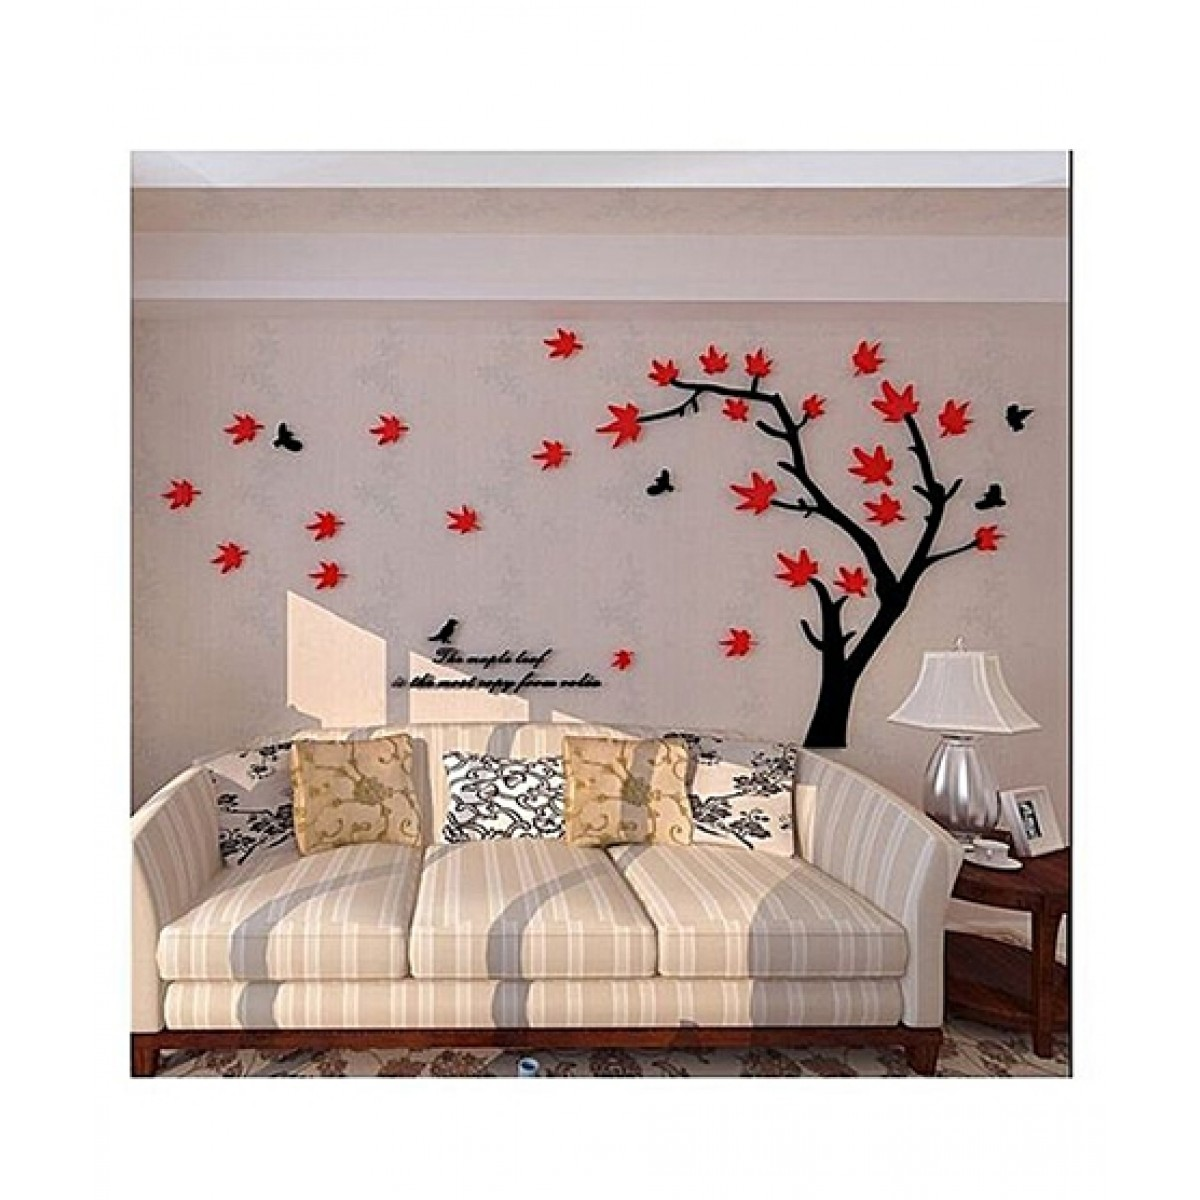 Top Secret Wall Decor Red Now Details @house2homegoods.net